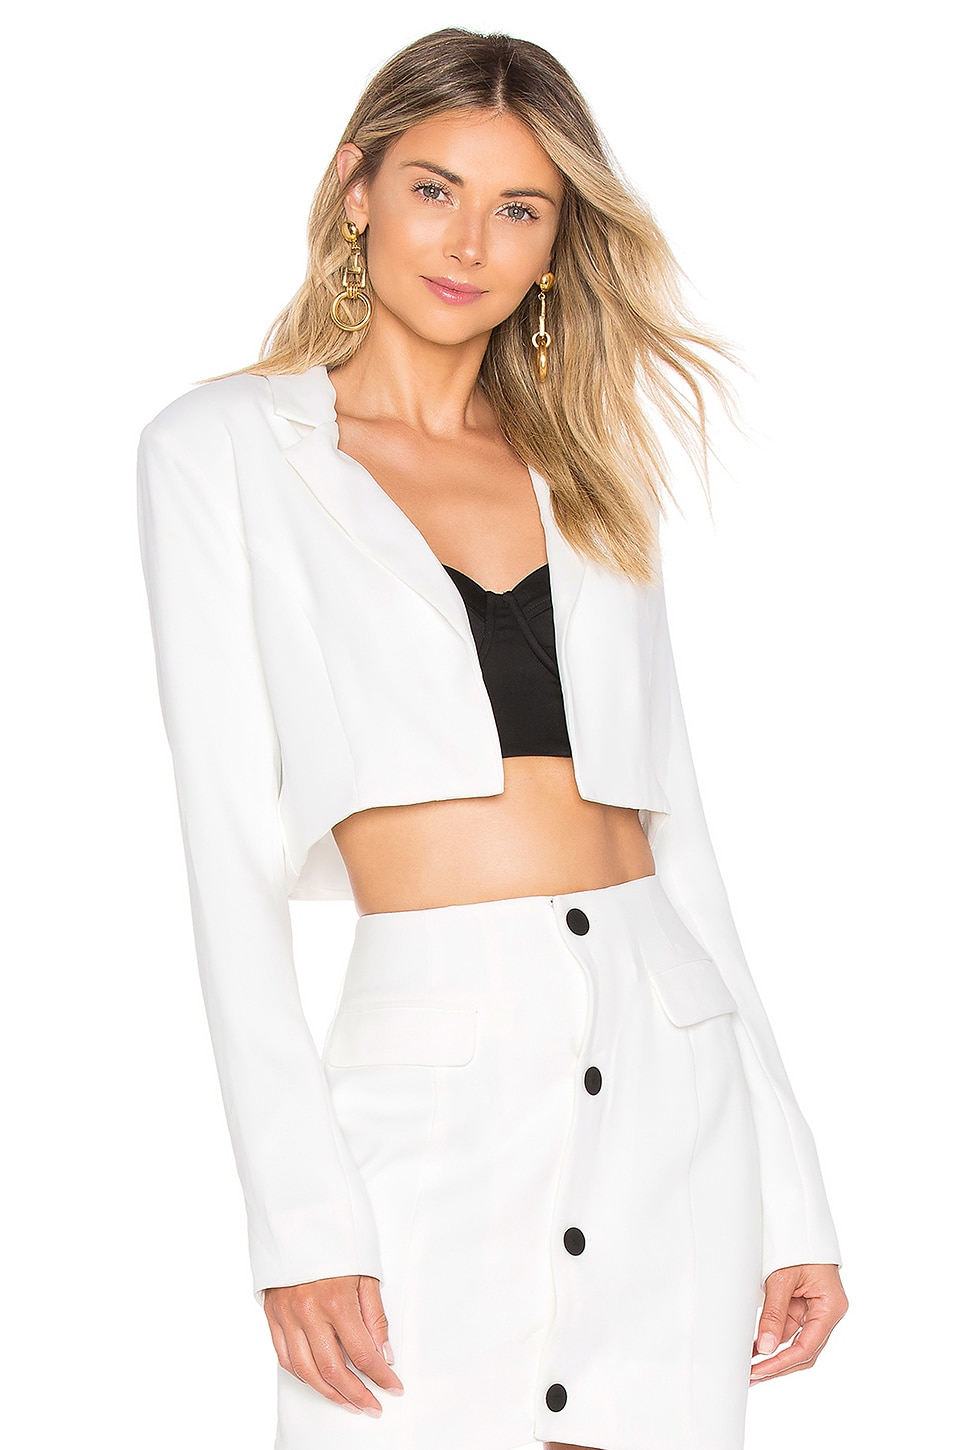 CHRISSY TEIGEN X Revolve Josiah Jacket in White